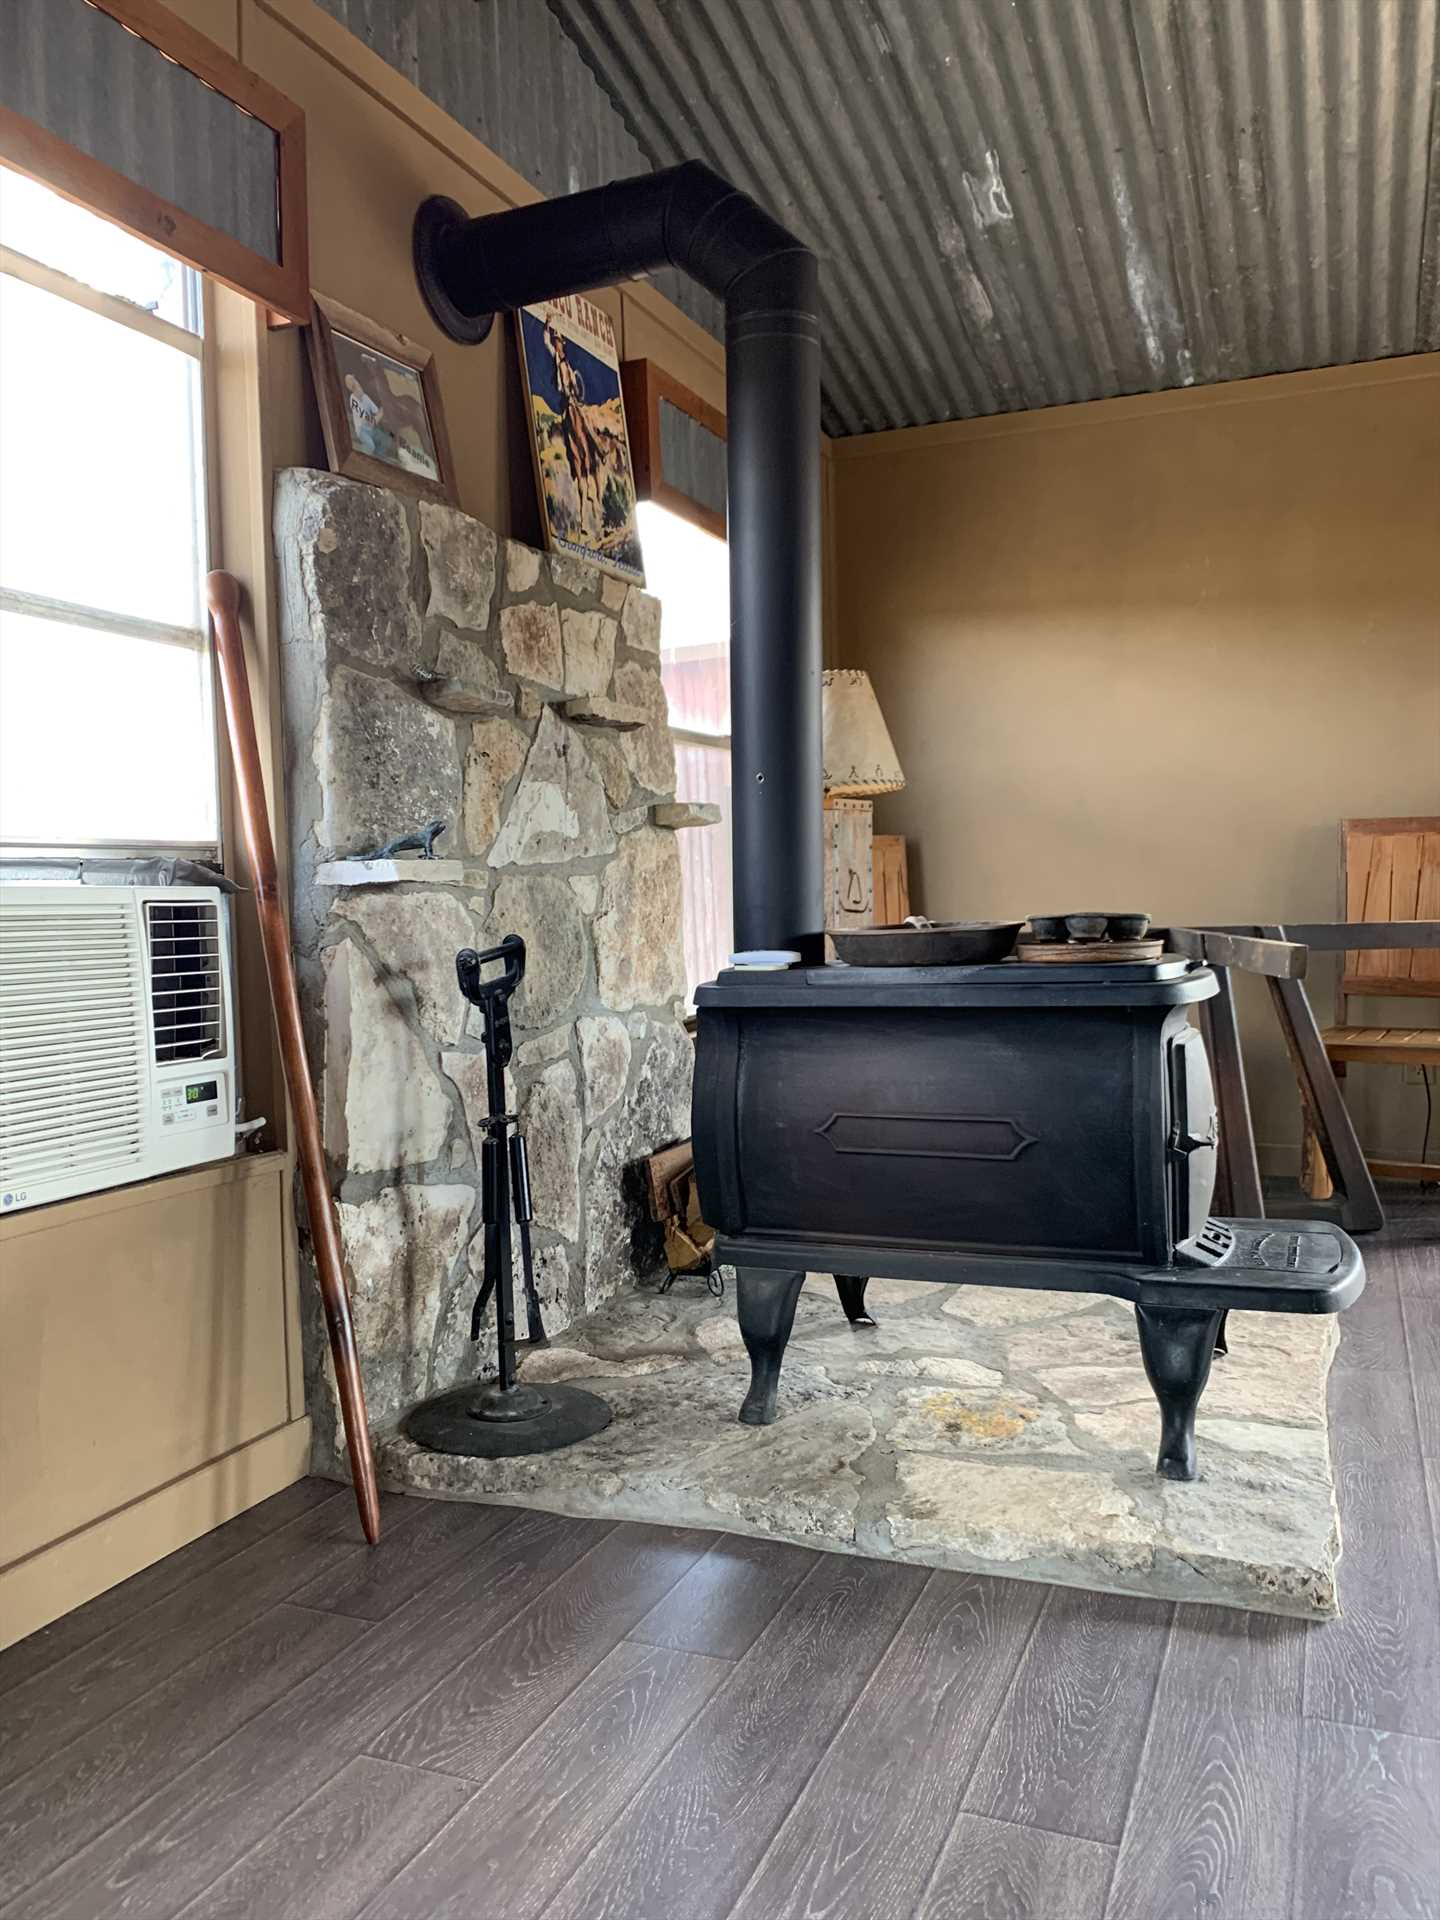 A vintage, and functional, wood-burning stove helps cut the chill in the pavilion on cooler days and nights.